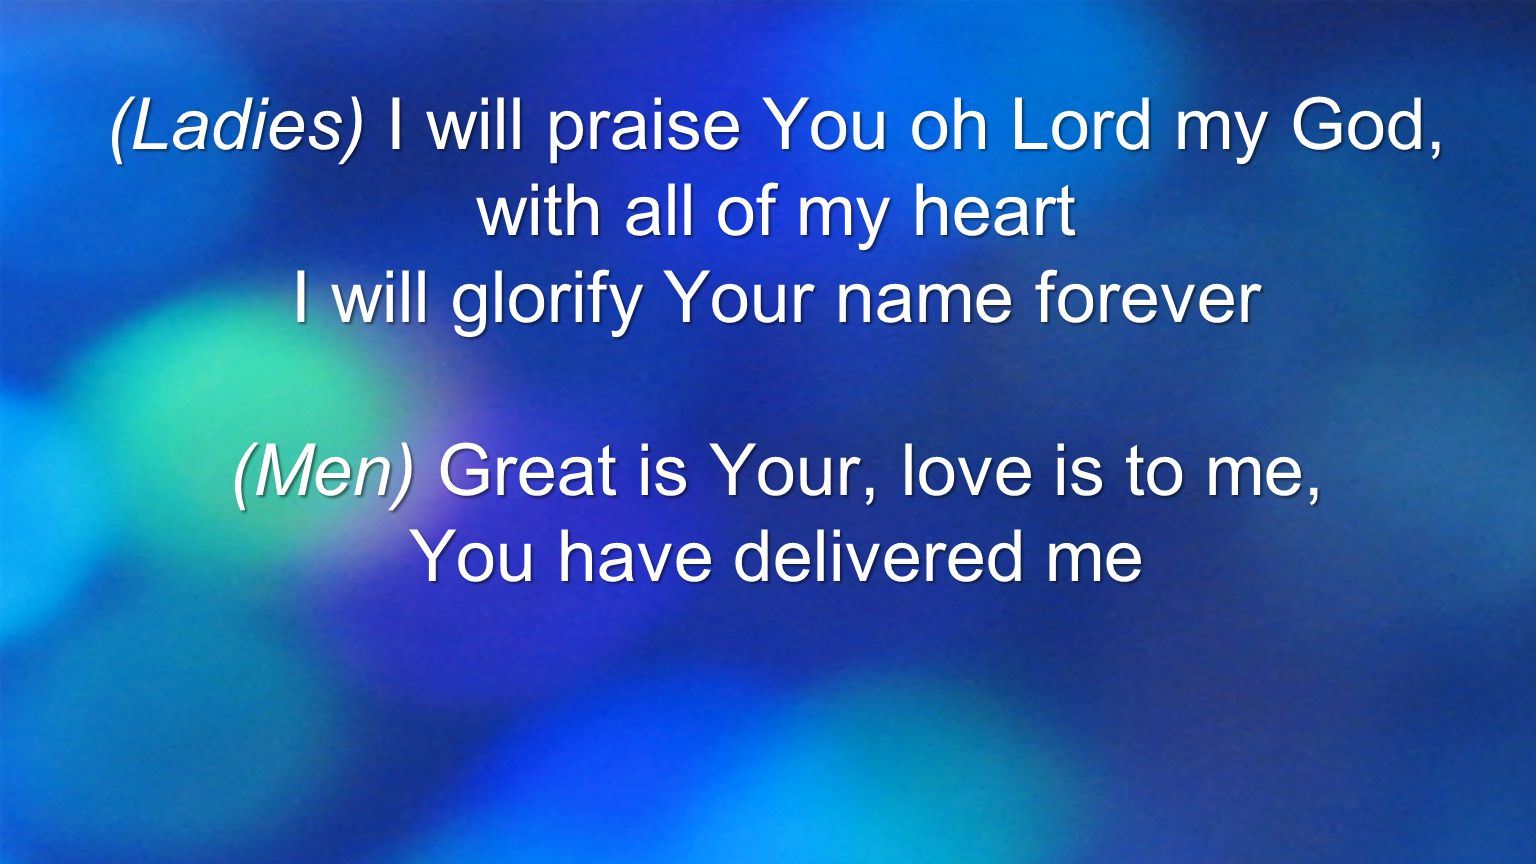 To Him be Glory For of Him and through Him and to Him are all things For of Him and through Him and to Him are all things